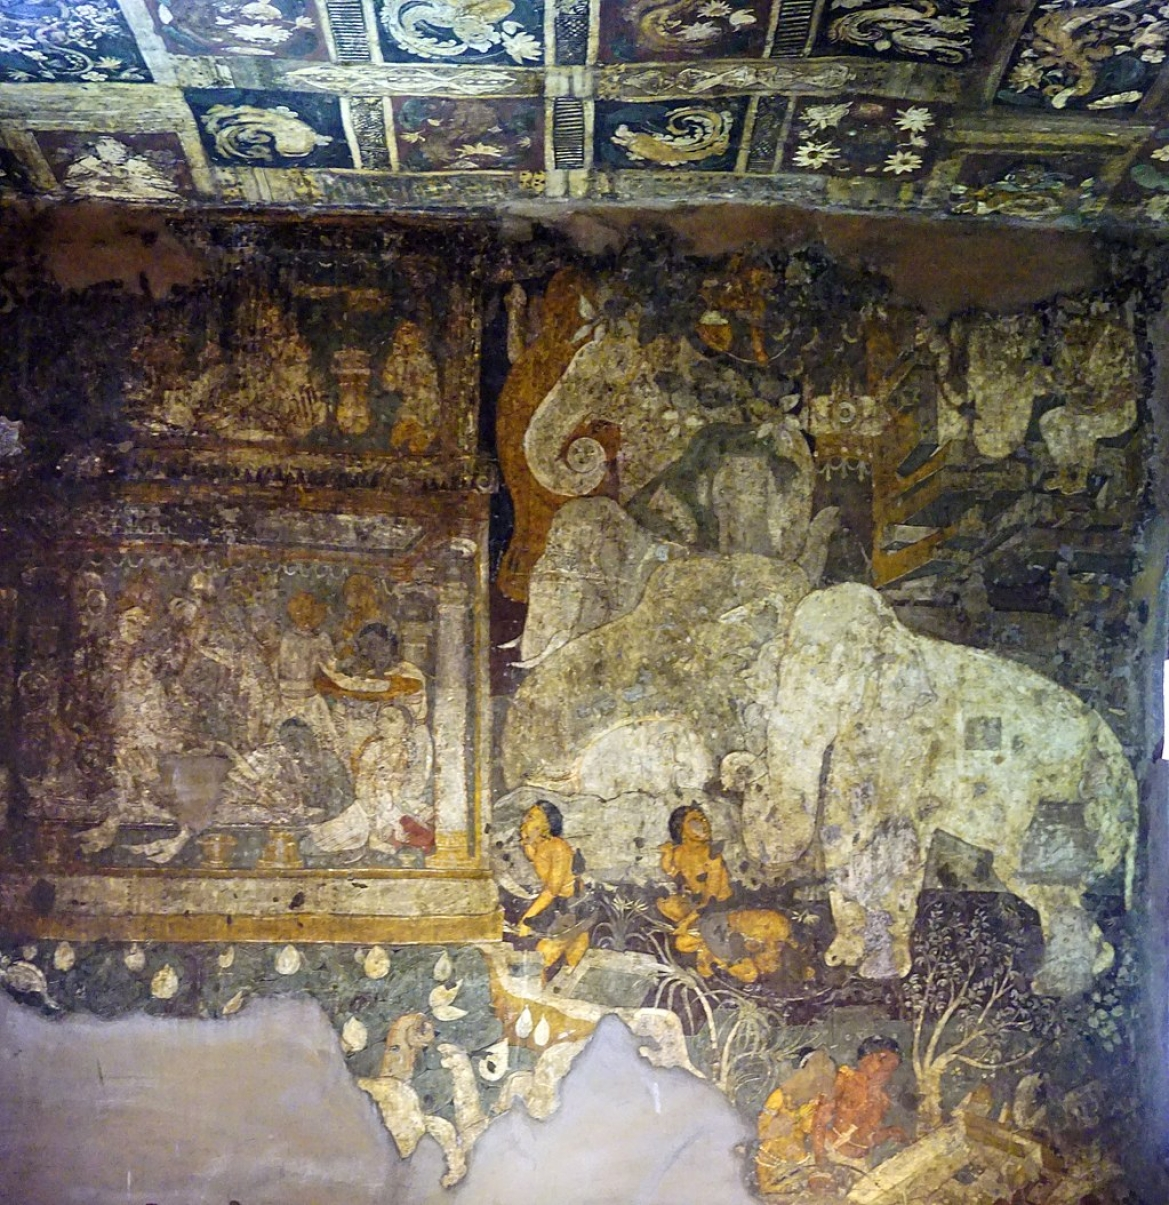 Painting depicting The King's White Elephant from Jataka tales, Cave 17